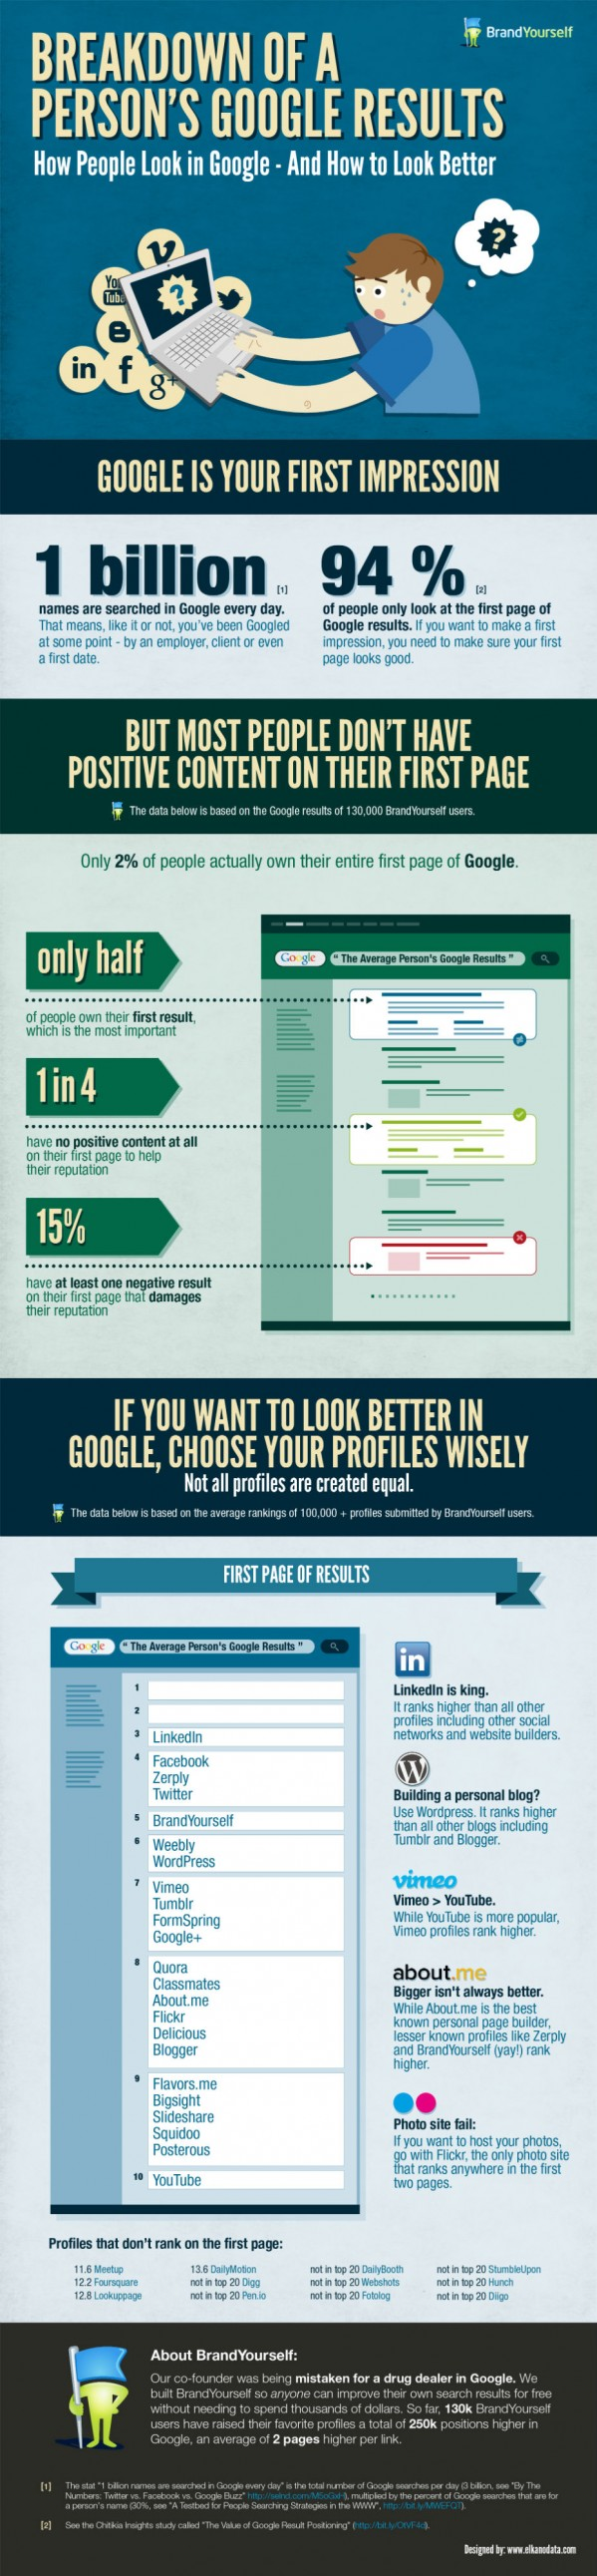 how can you rank better on google?